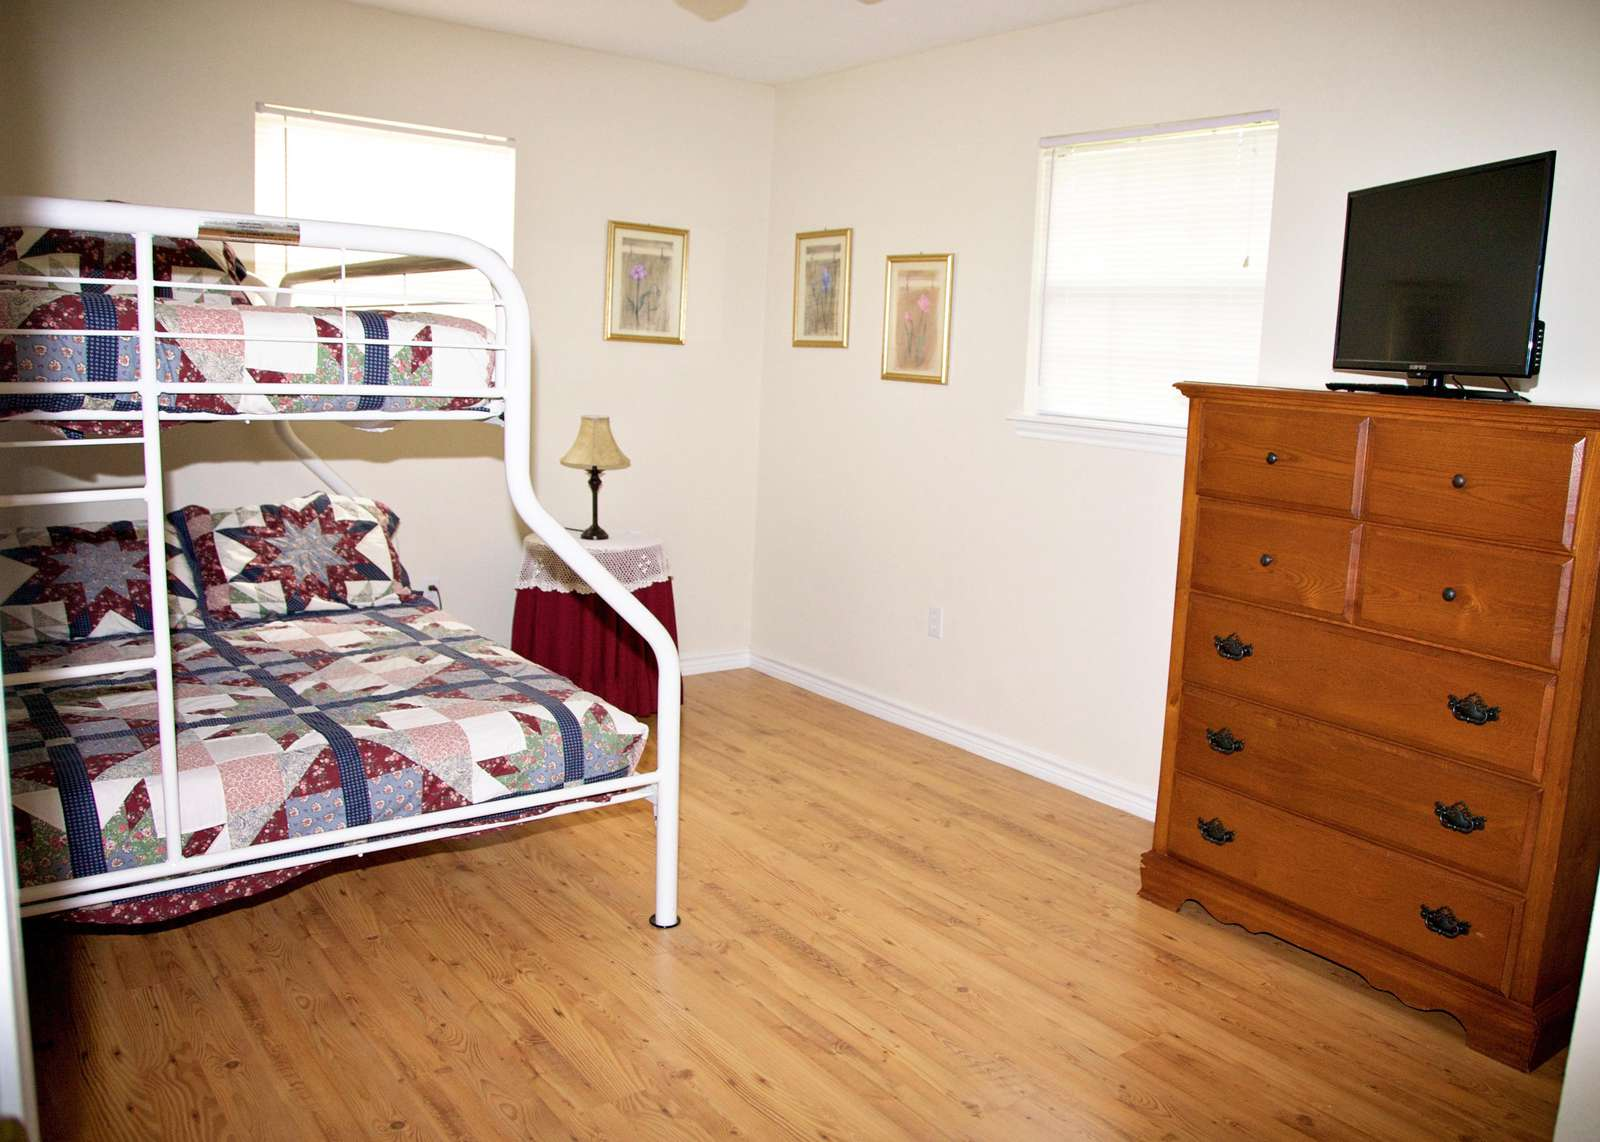 The third bedroom is a twin over full bunk with a flat screen television and basic cable.